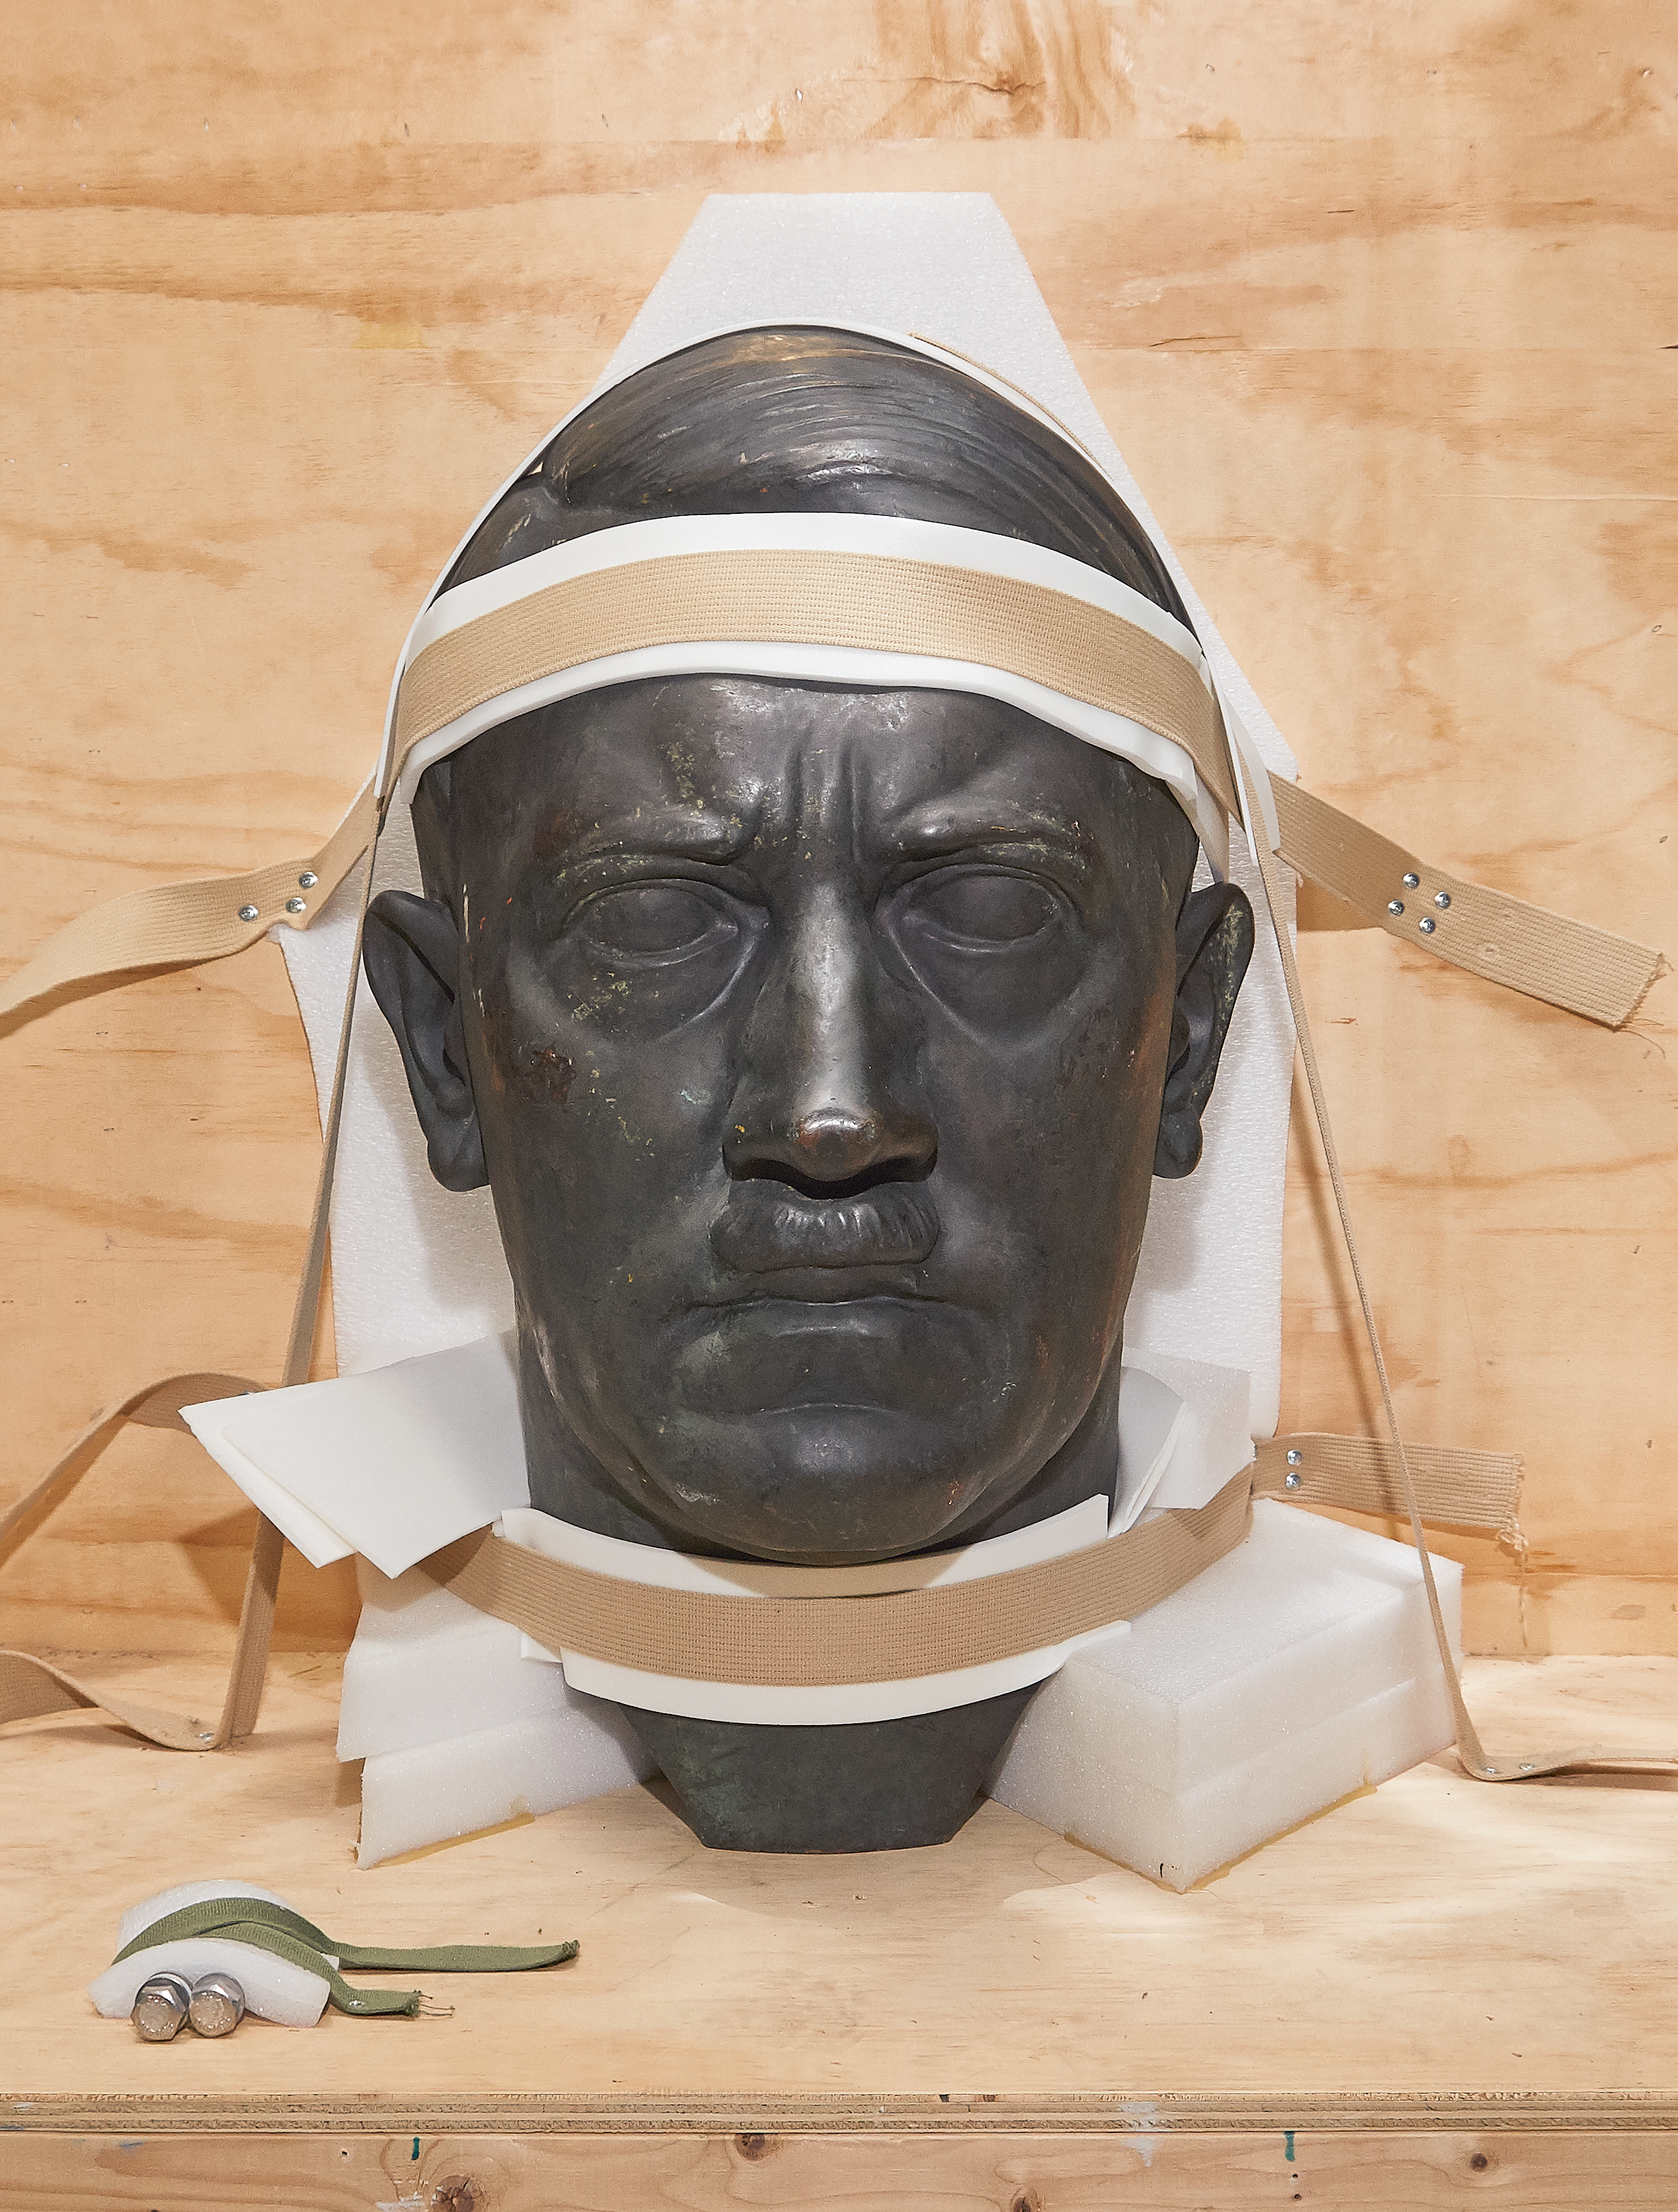 Fort Belvoir's three-foot bust of Hitler, one of the more dramatic pieces that the US Army requisitioned as the Third Reich fell.